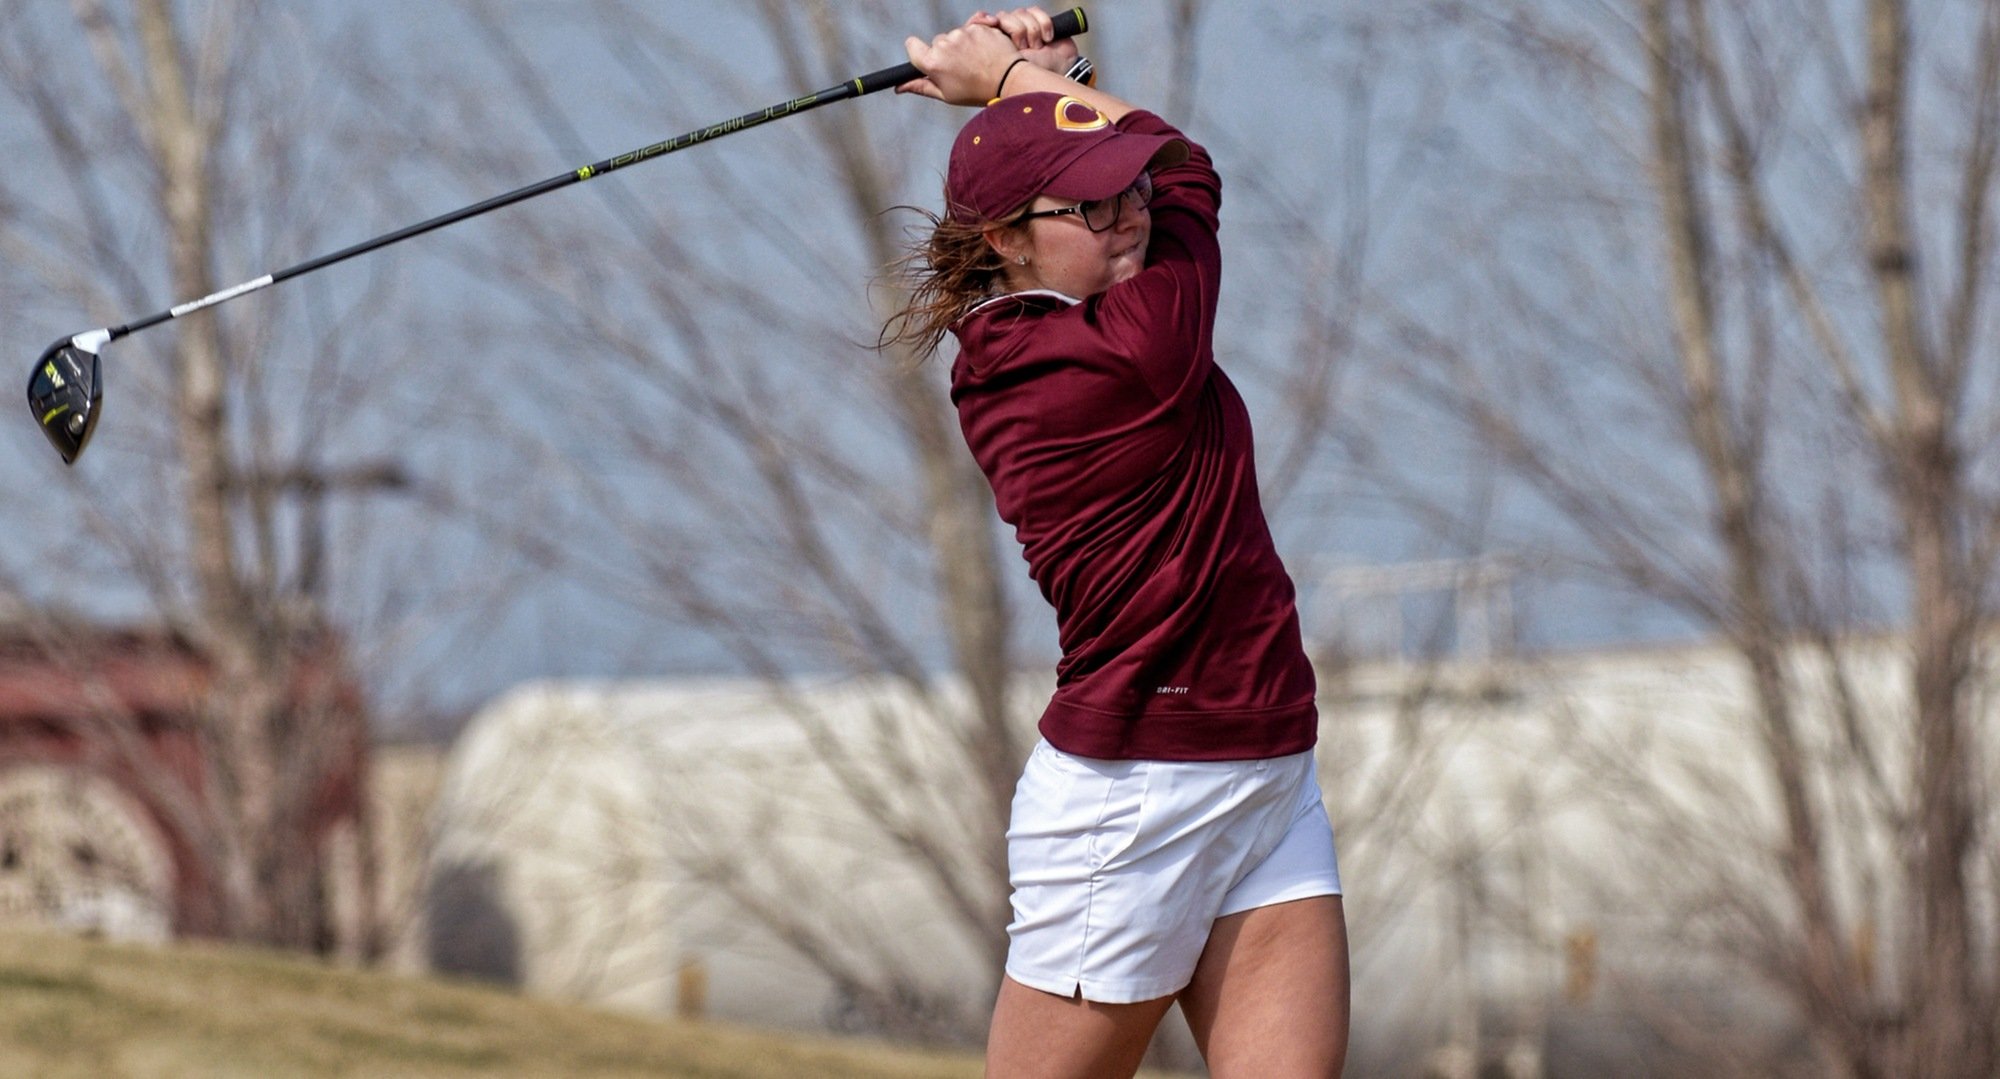 Katie Krueger shot an 88 on both days at the College City Classic and led the Cobbers with a 176.